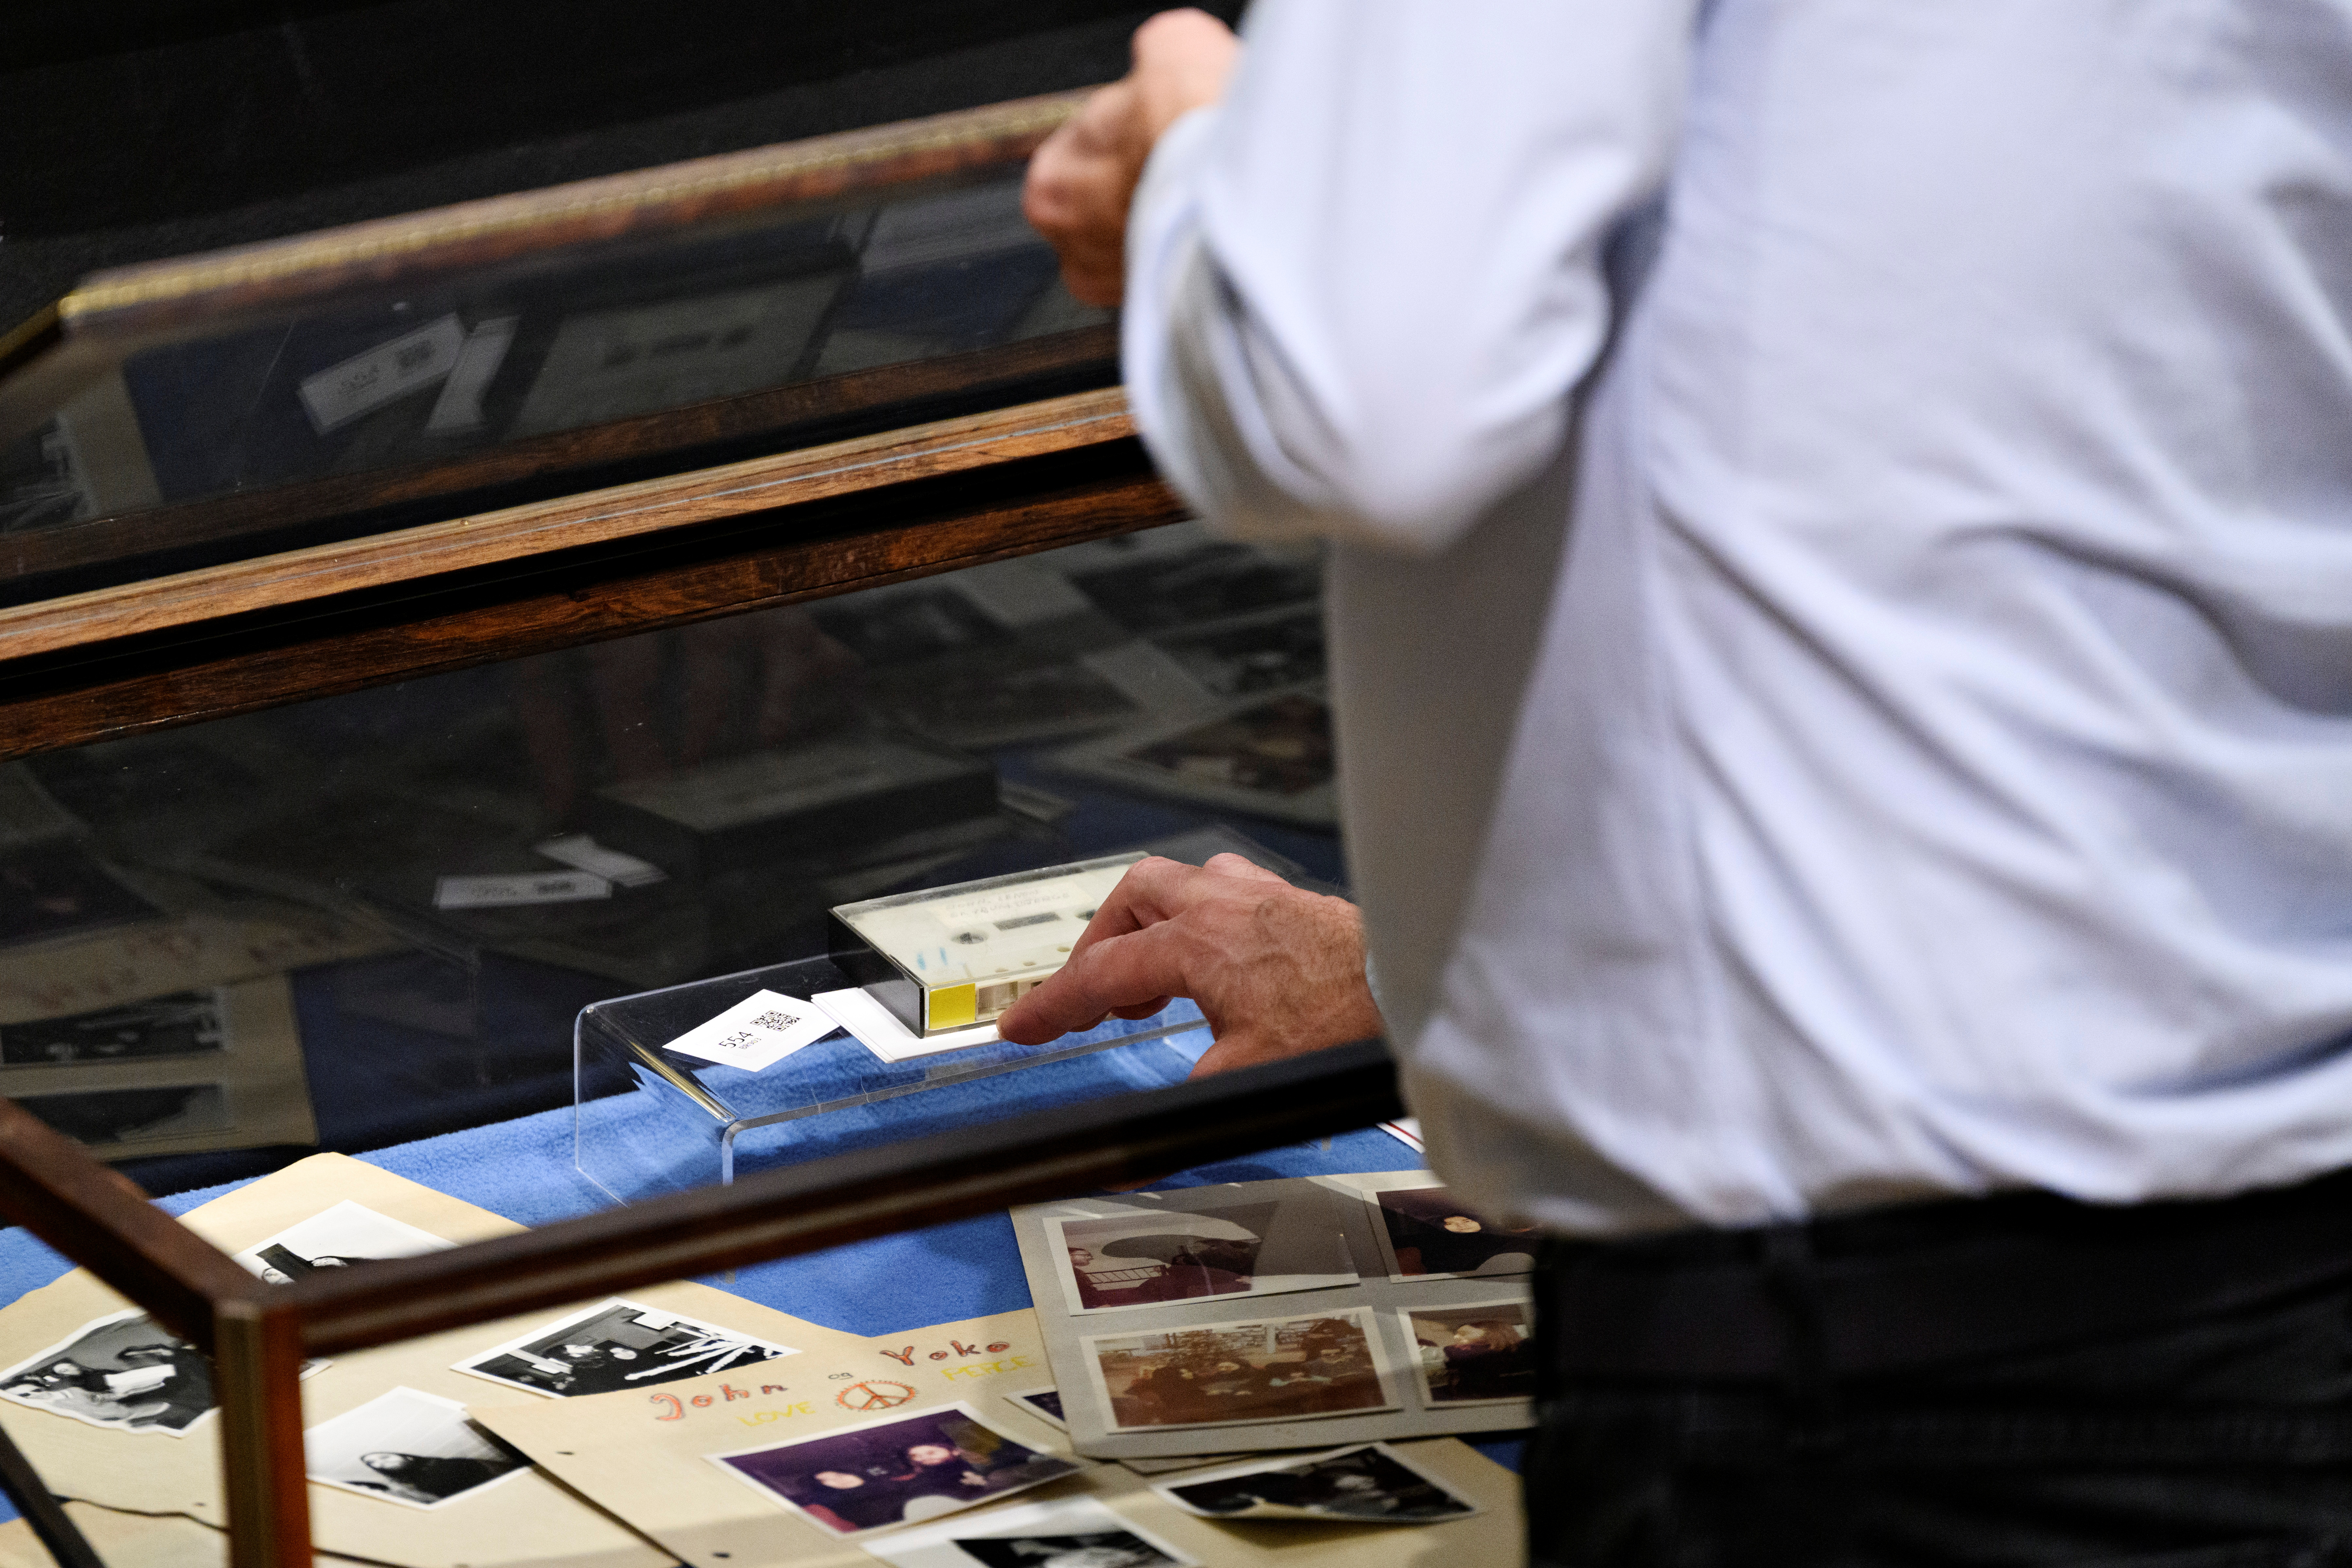 A staff member tends to the items at an auction of polariods and a cassette with the recording of Danish schoolboys' interviews with John Lennon and Yoko Ono during the couple's winter stay in Thy, Jutland, Denmark in 1970 at Bruun Rasmussen Auction House in Copenhagen, Denmark, September 28, 2021. Ritzau Scanpix/Philip Davali via REUTERS